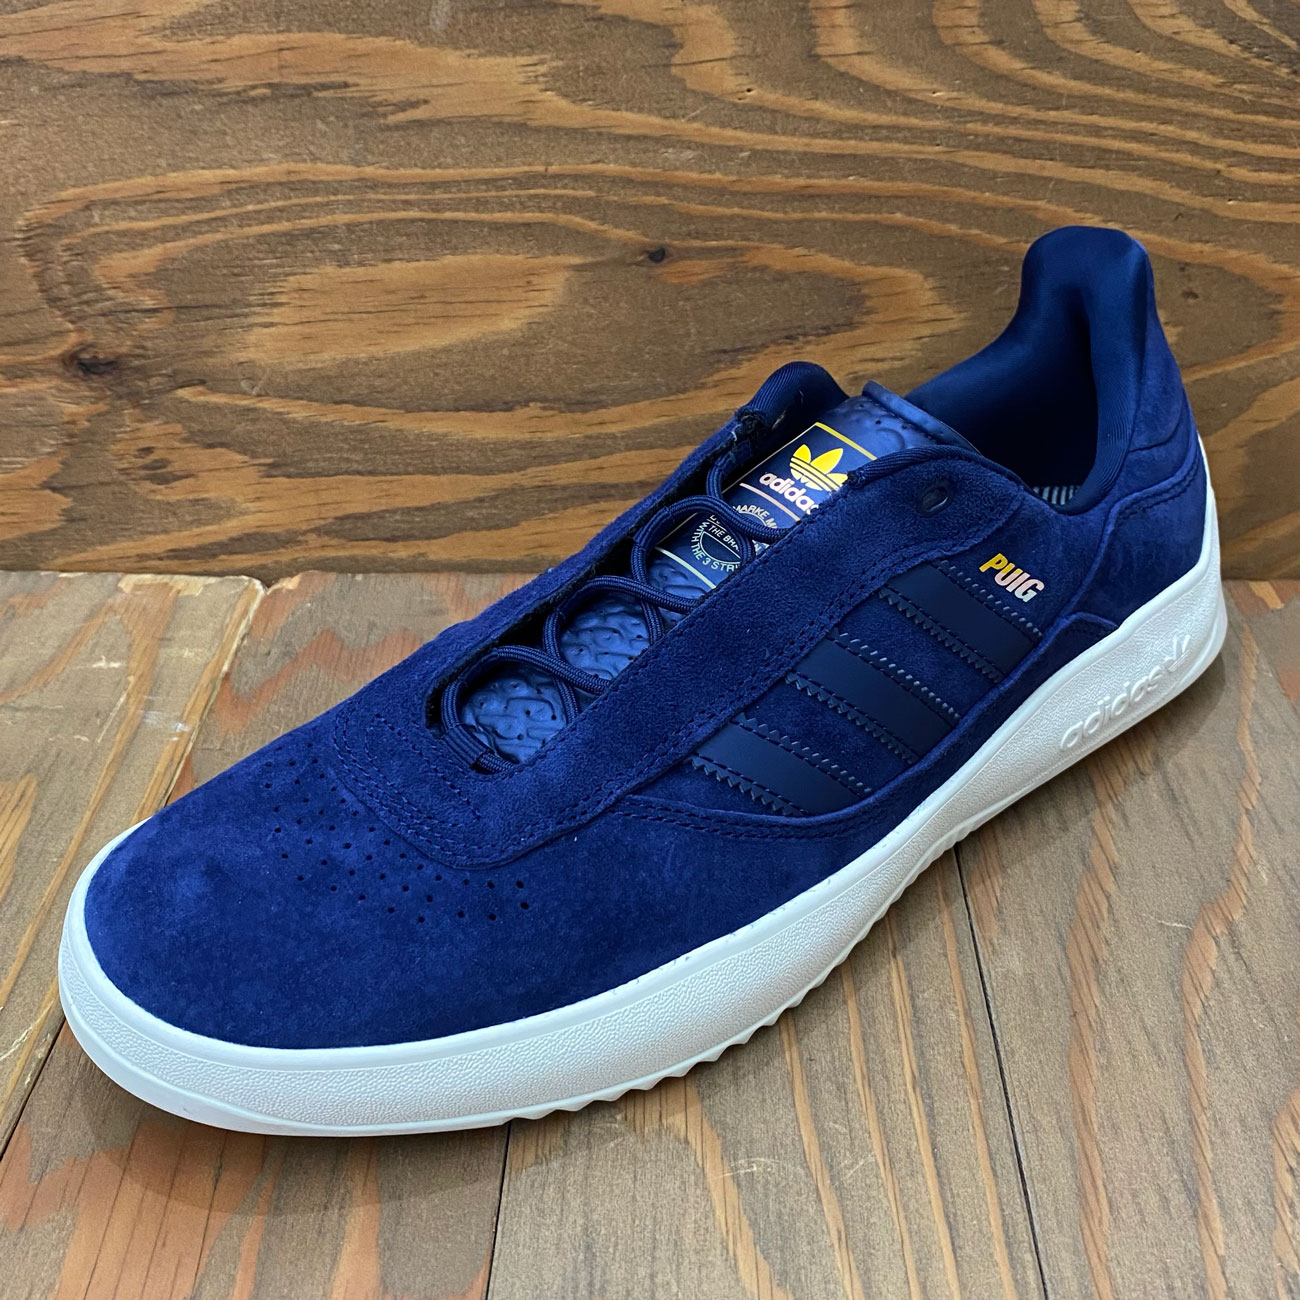 ADIDAS PUIG NIGHTSKY/NIGHTSKY/WHITE